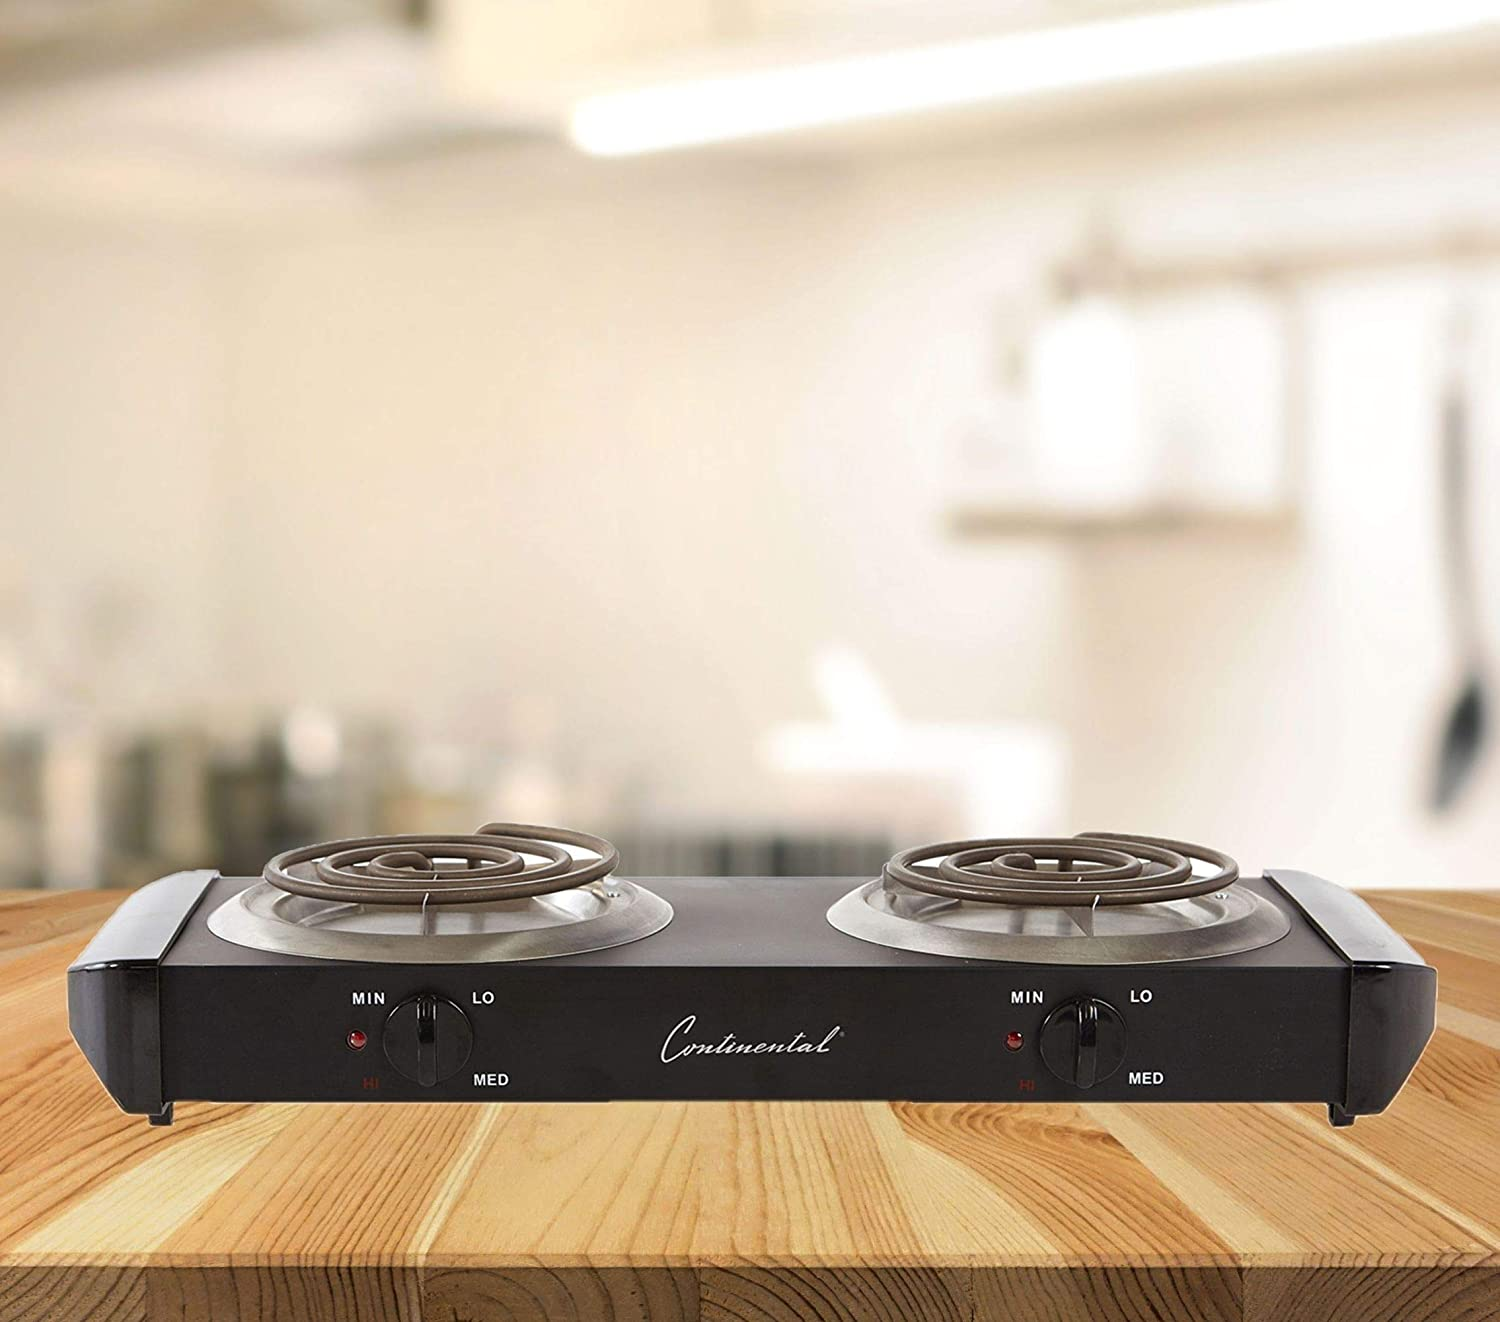 Amazon.com: Continental Electric CE23319 Double Burner Range: Electric Countertop Burners: Kitchen & Dining